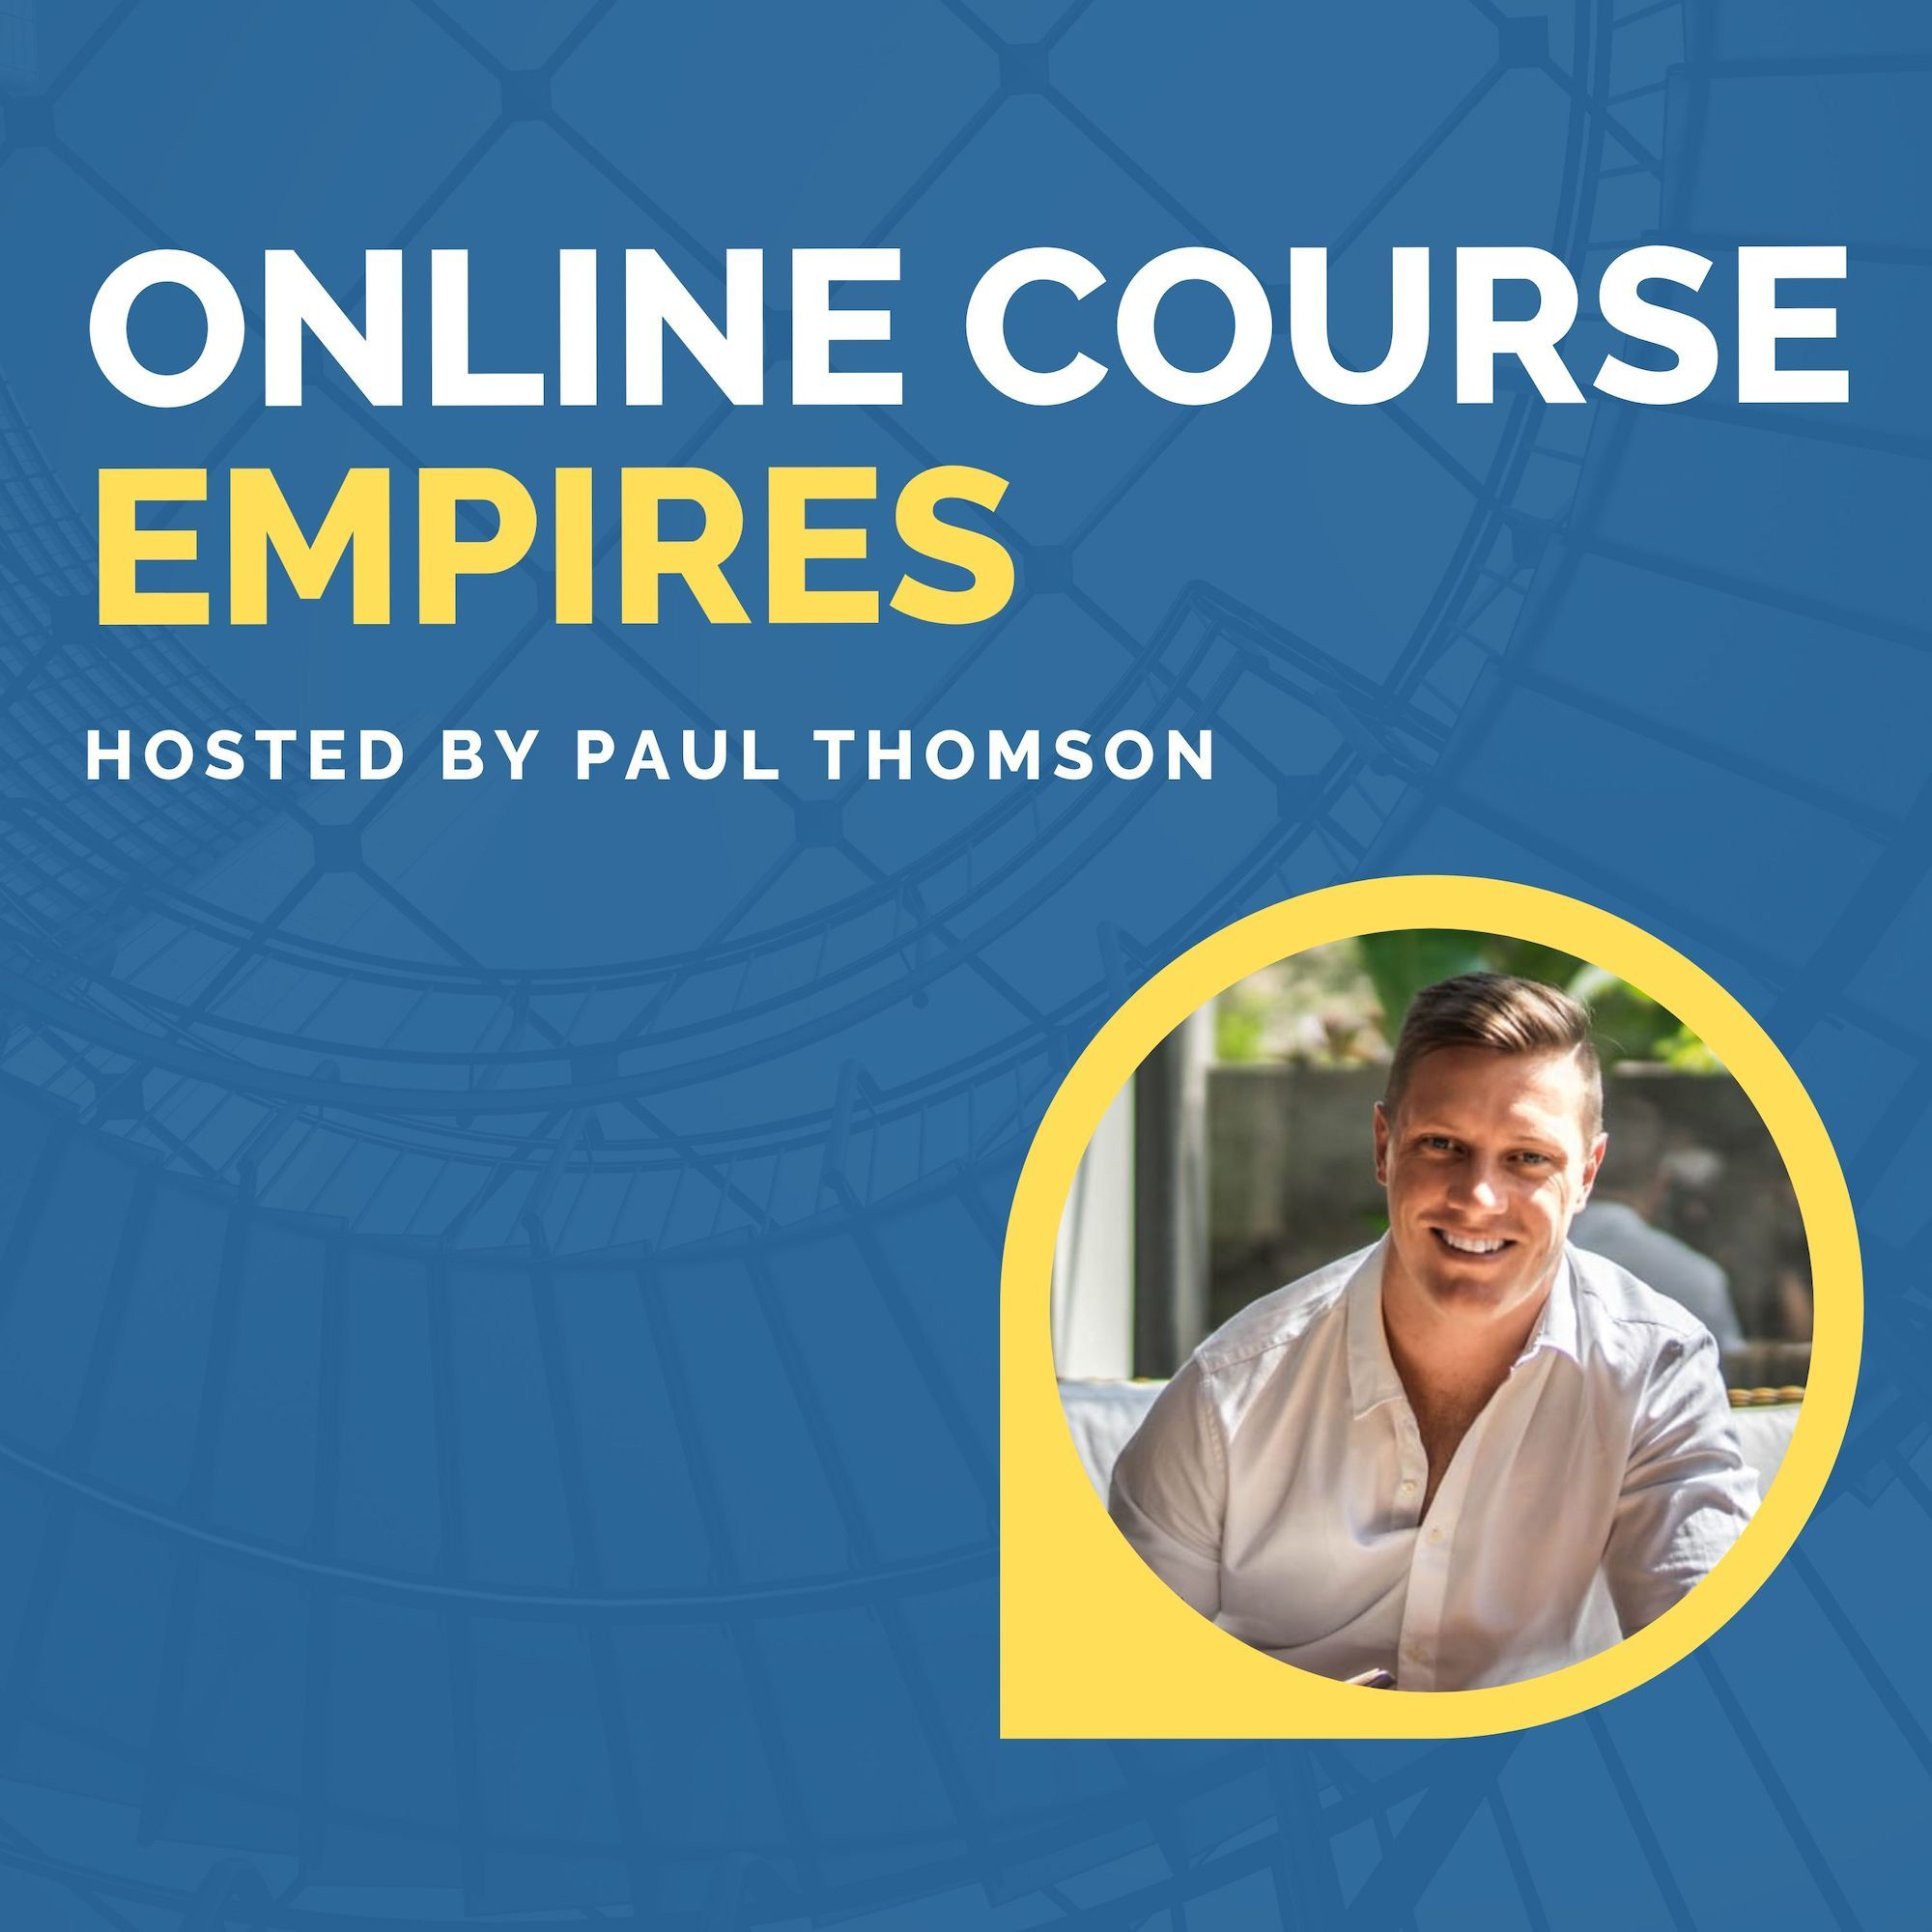 Fiverr, Hootsuite & John Lee Dumas all choose Rob Galvin to build their membership sites: Learn how to Power Up your membership sites to world-class standards.